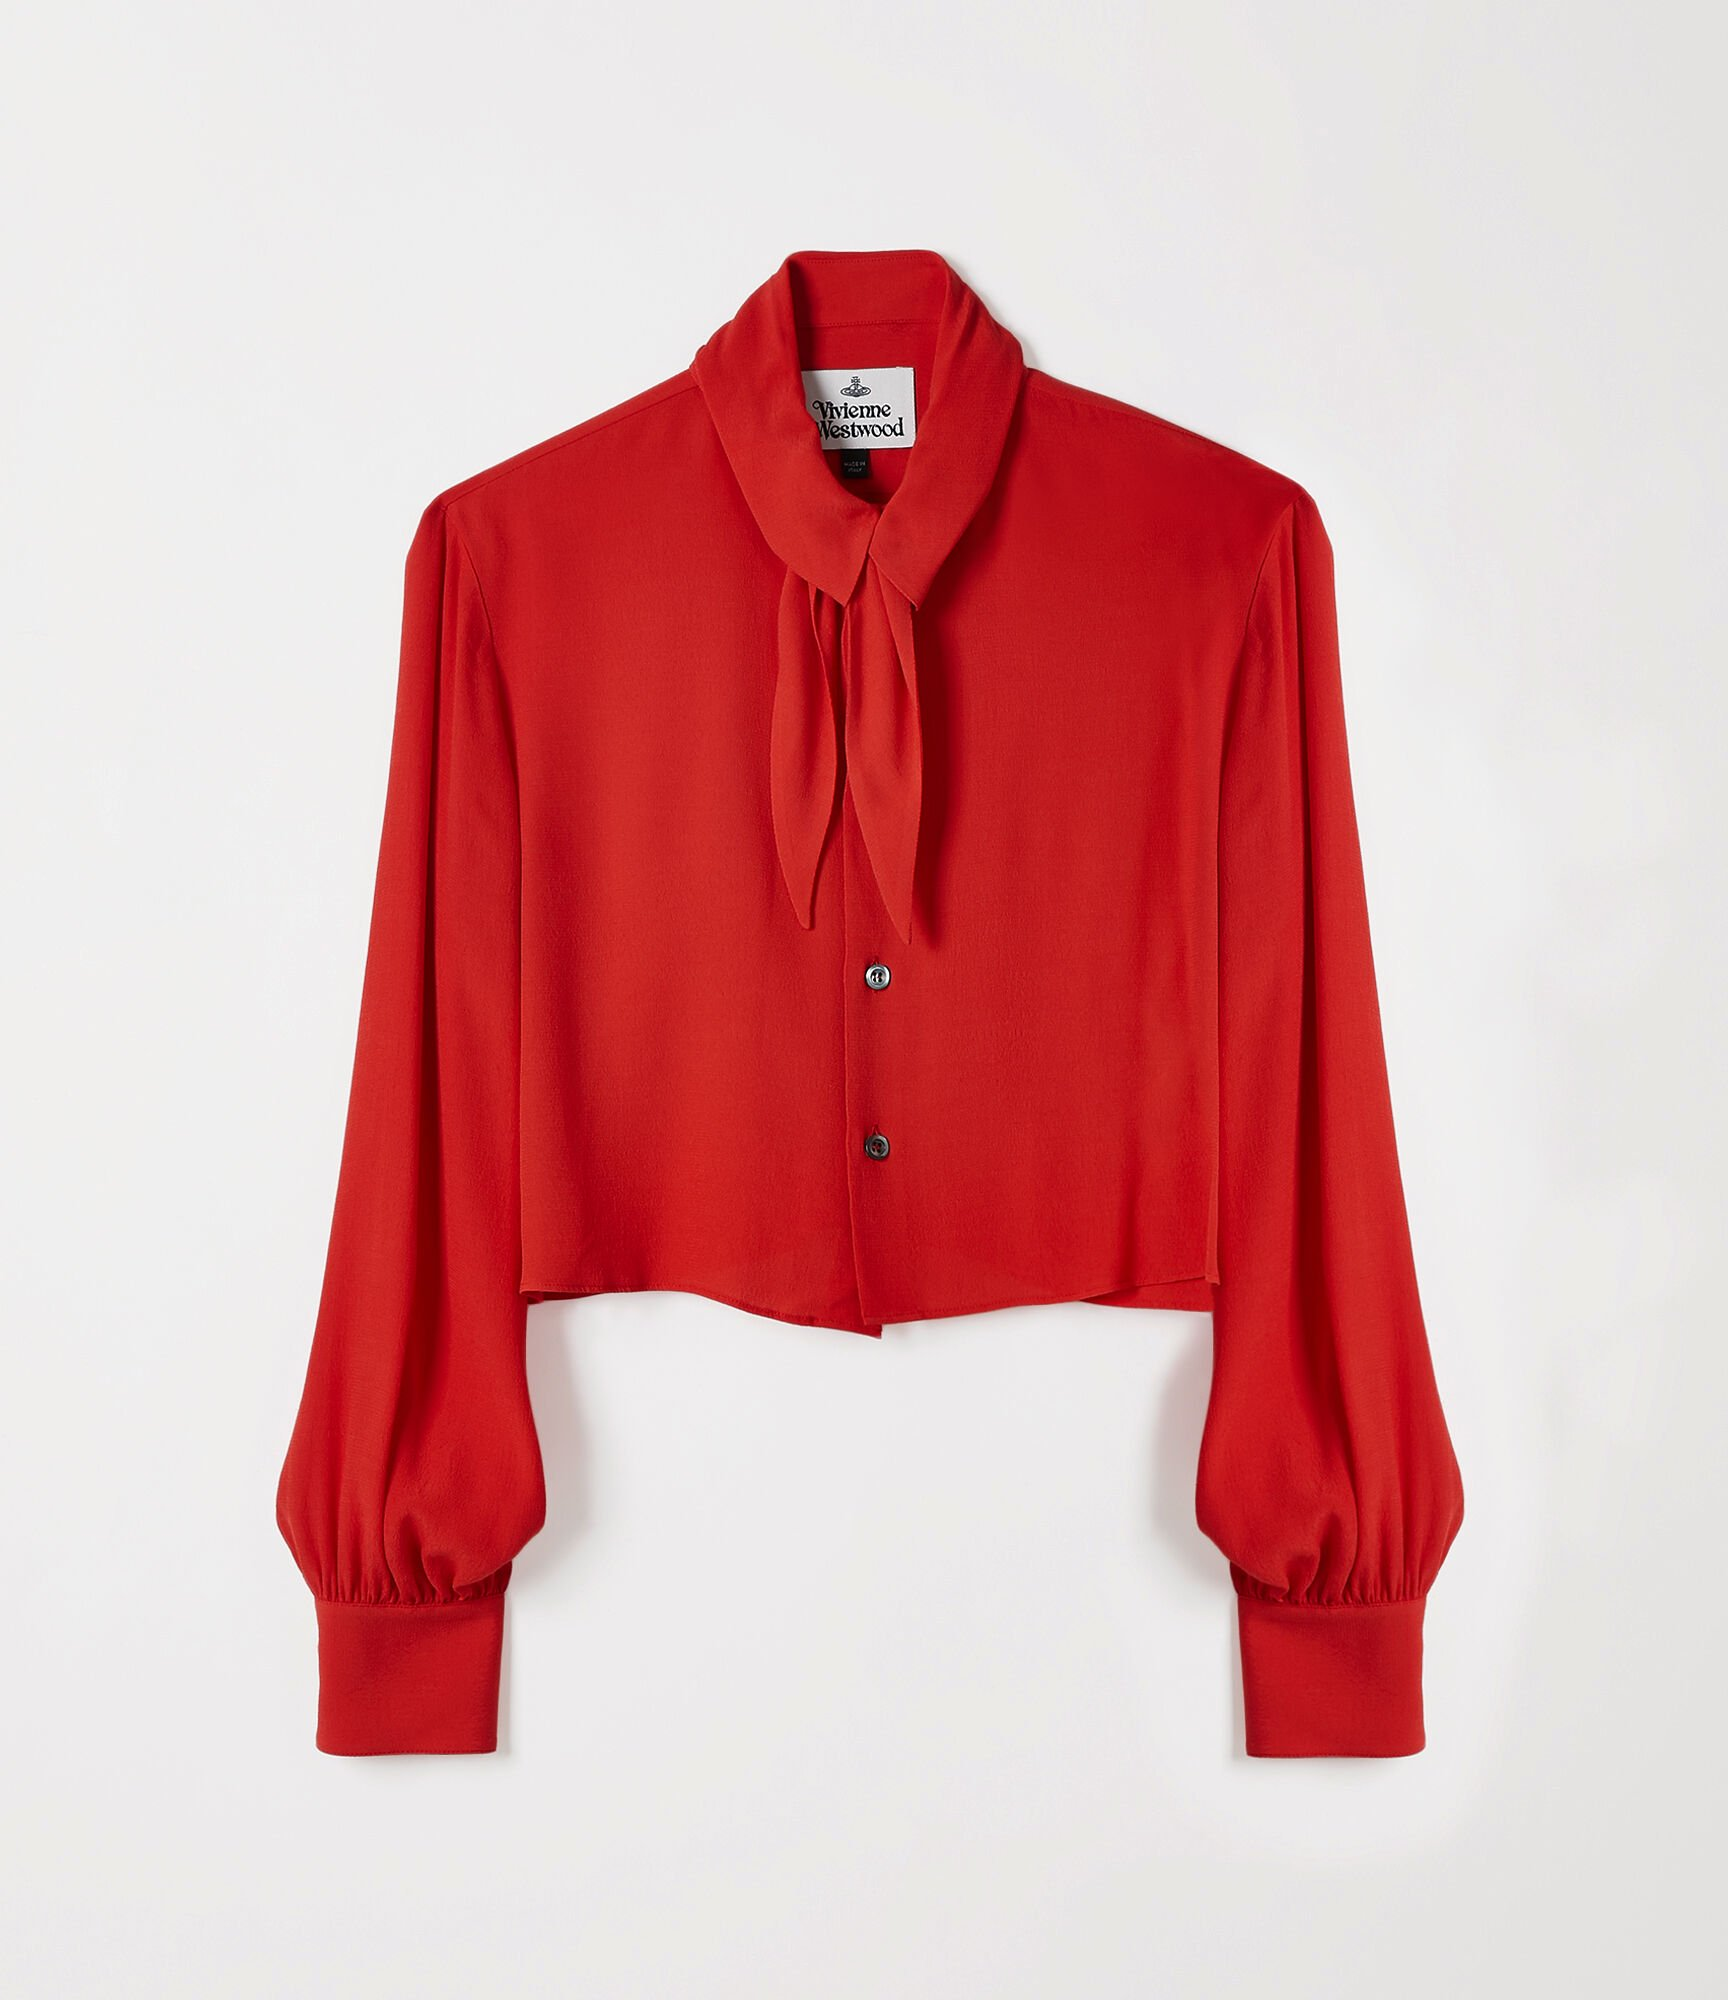 Vivienne Westwood Hals Cropped Shirt Red